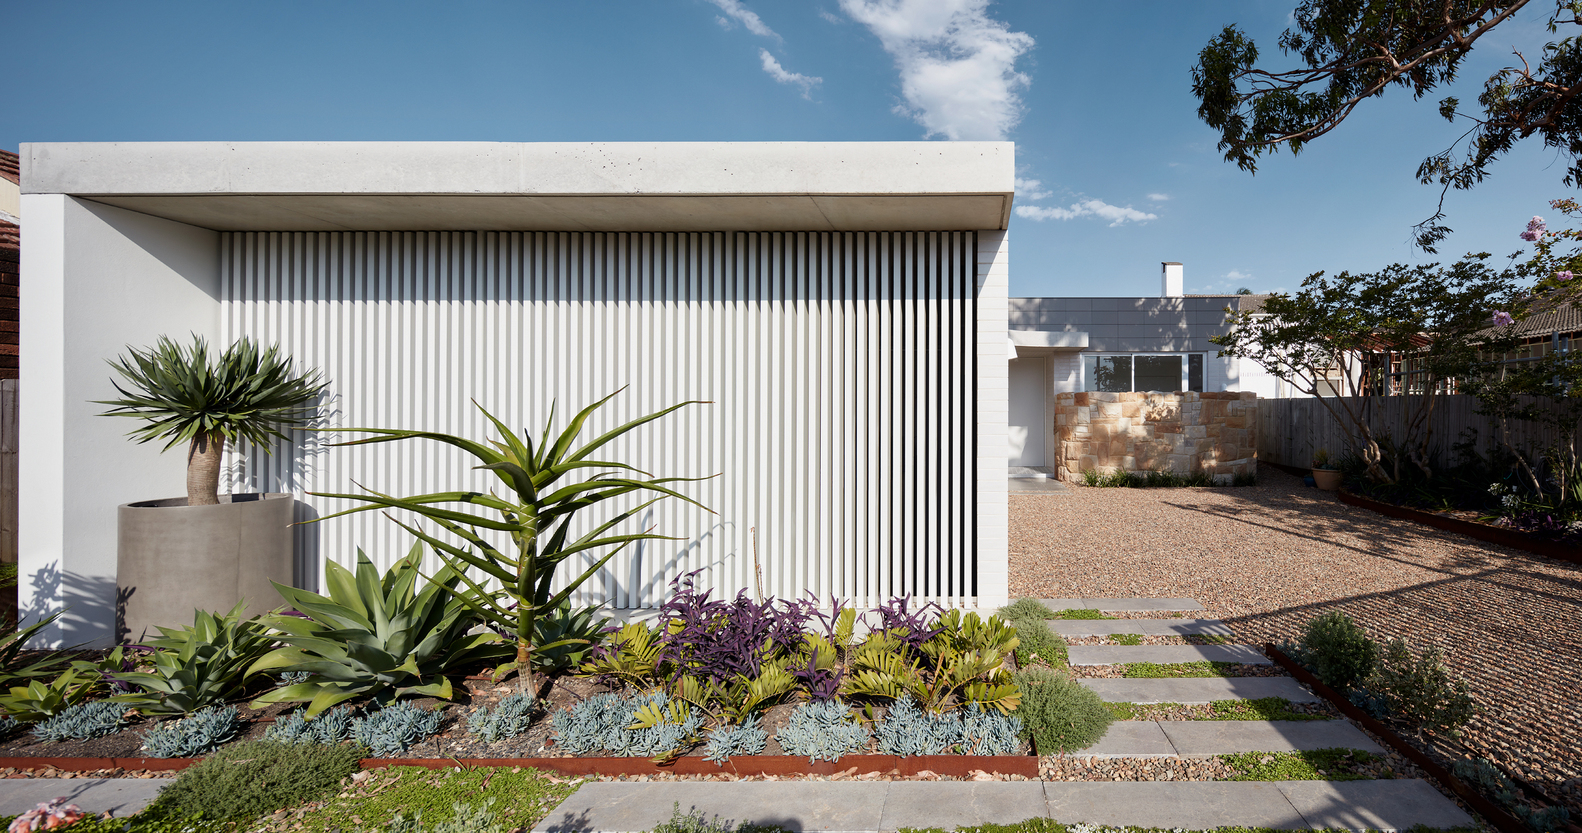 This Sydney Home Turns the Traditional Aussie House on its Side